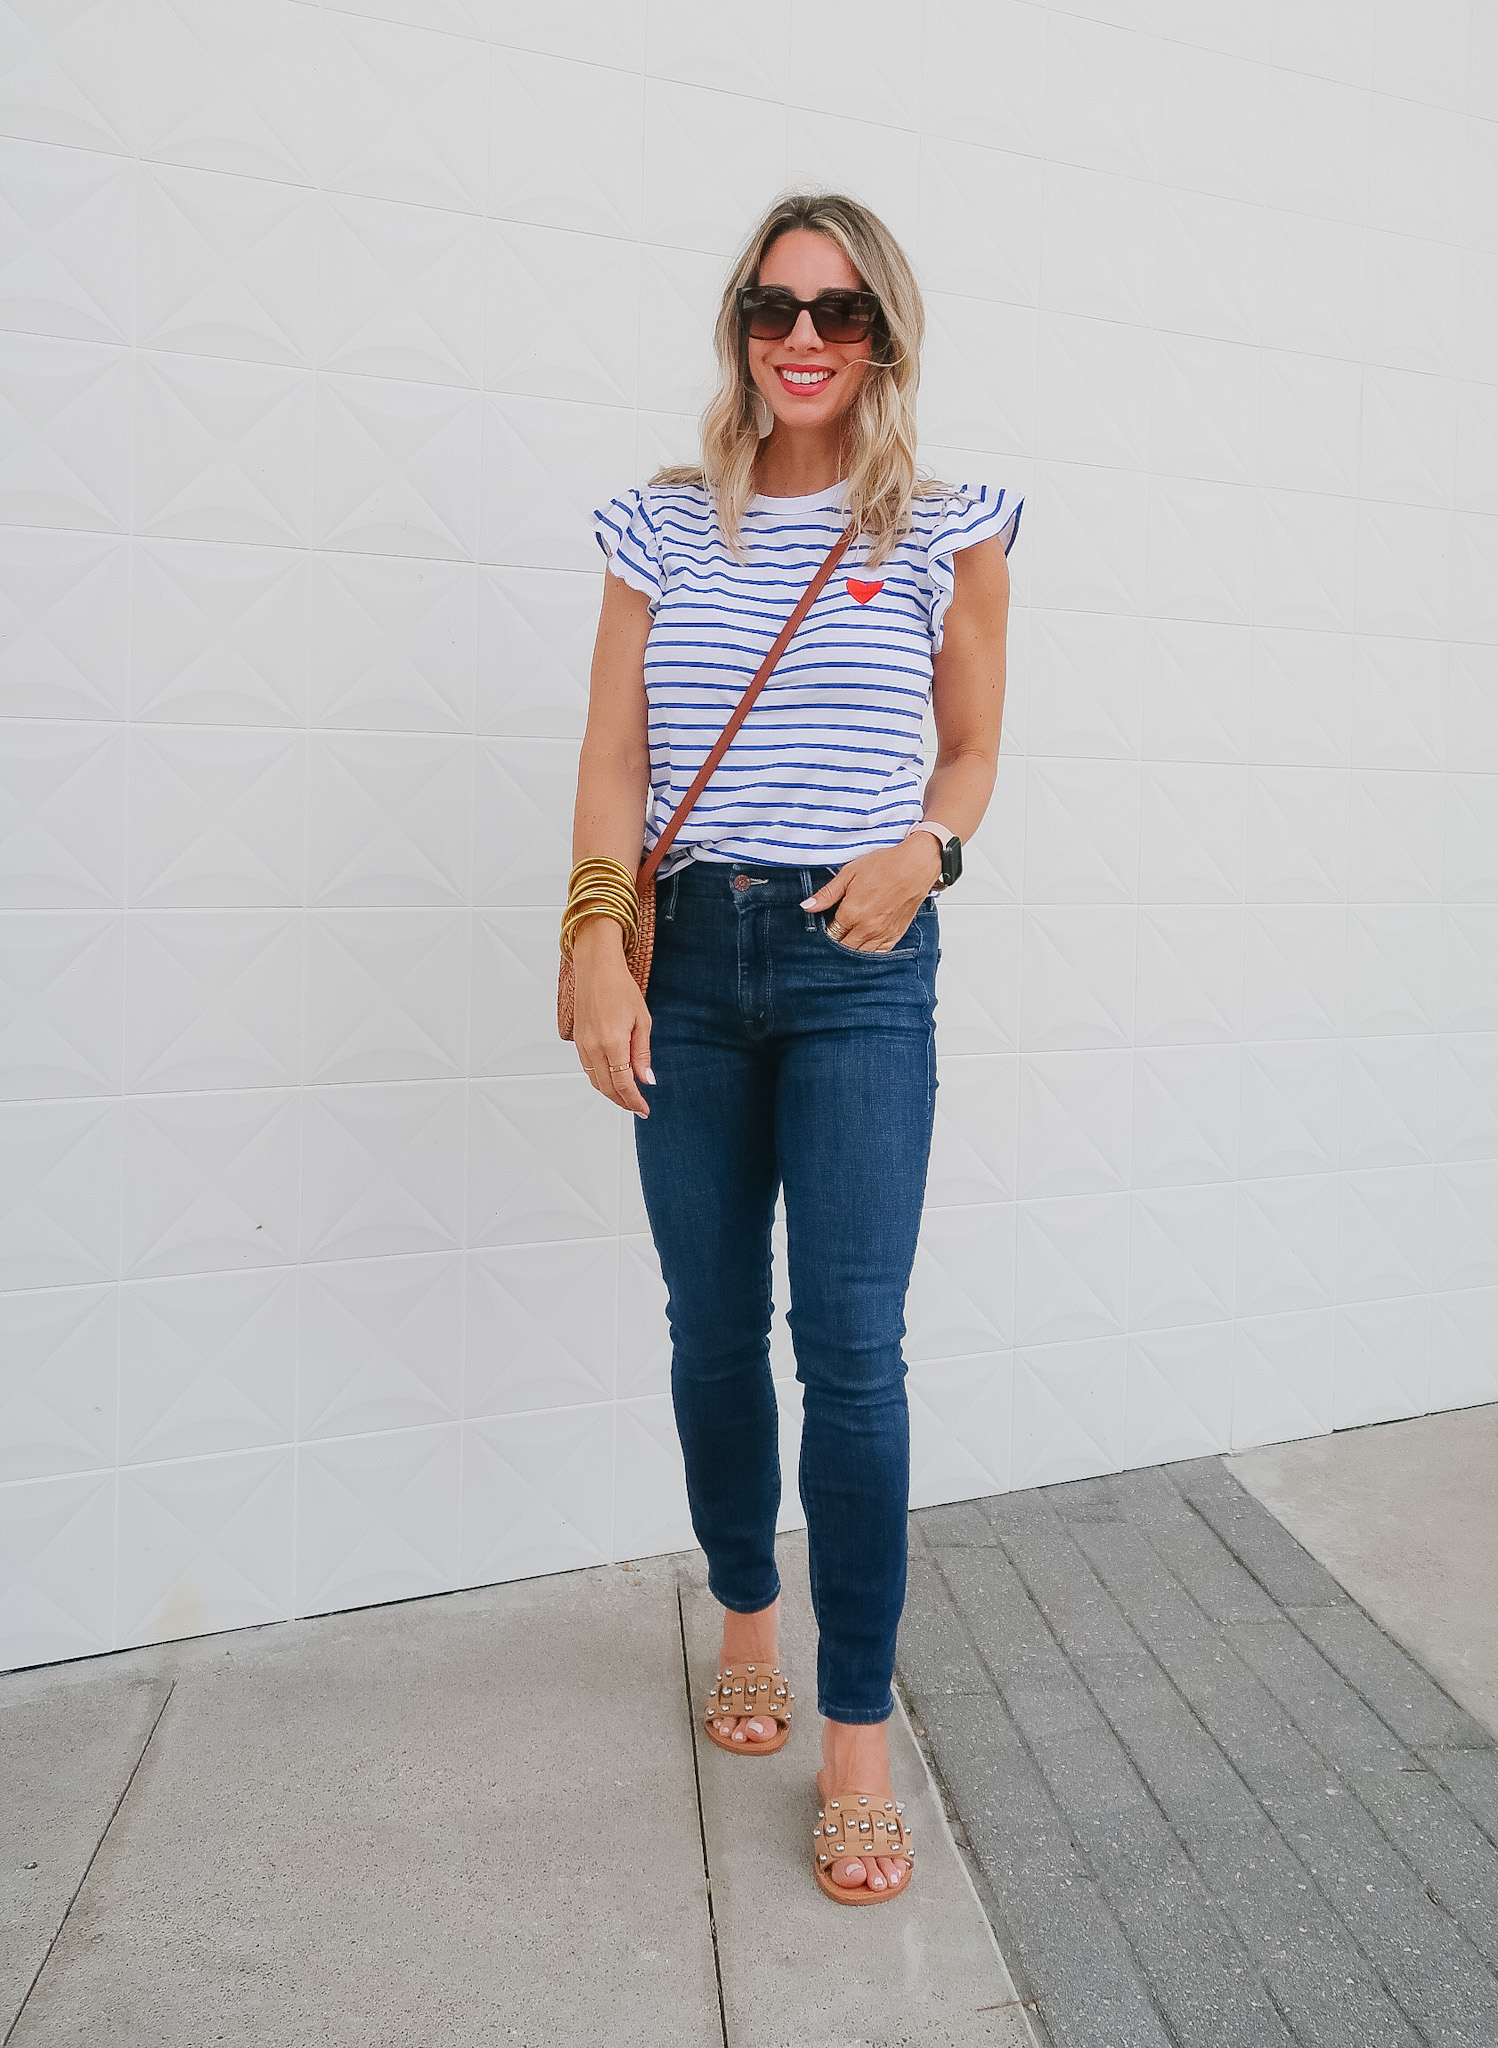 Outfits Lately, Striped Heart Top, Jeans, Sandals, Crossbody